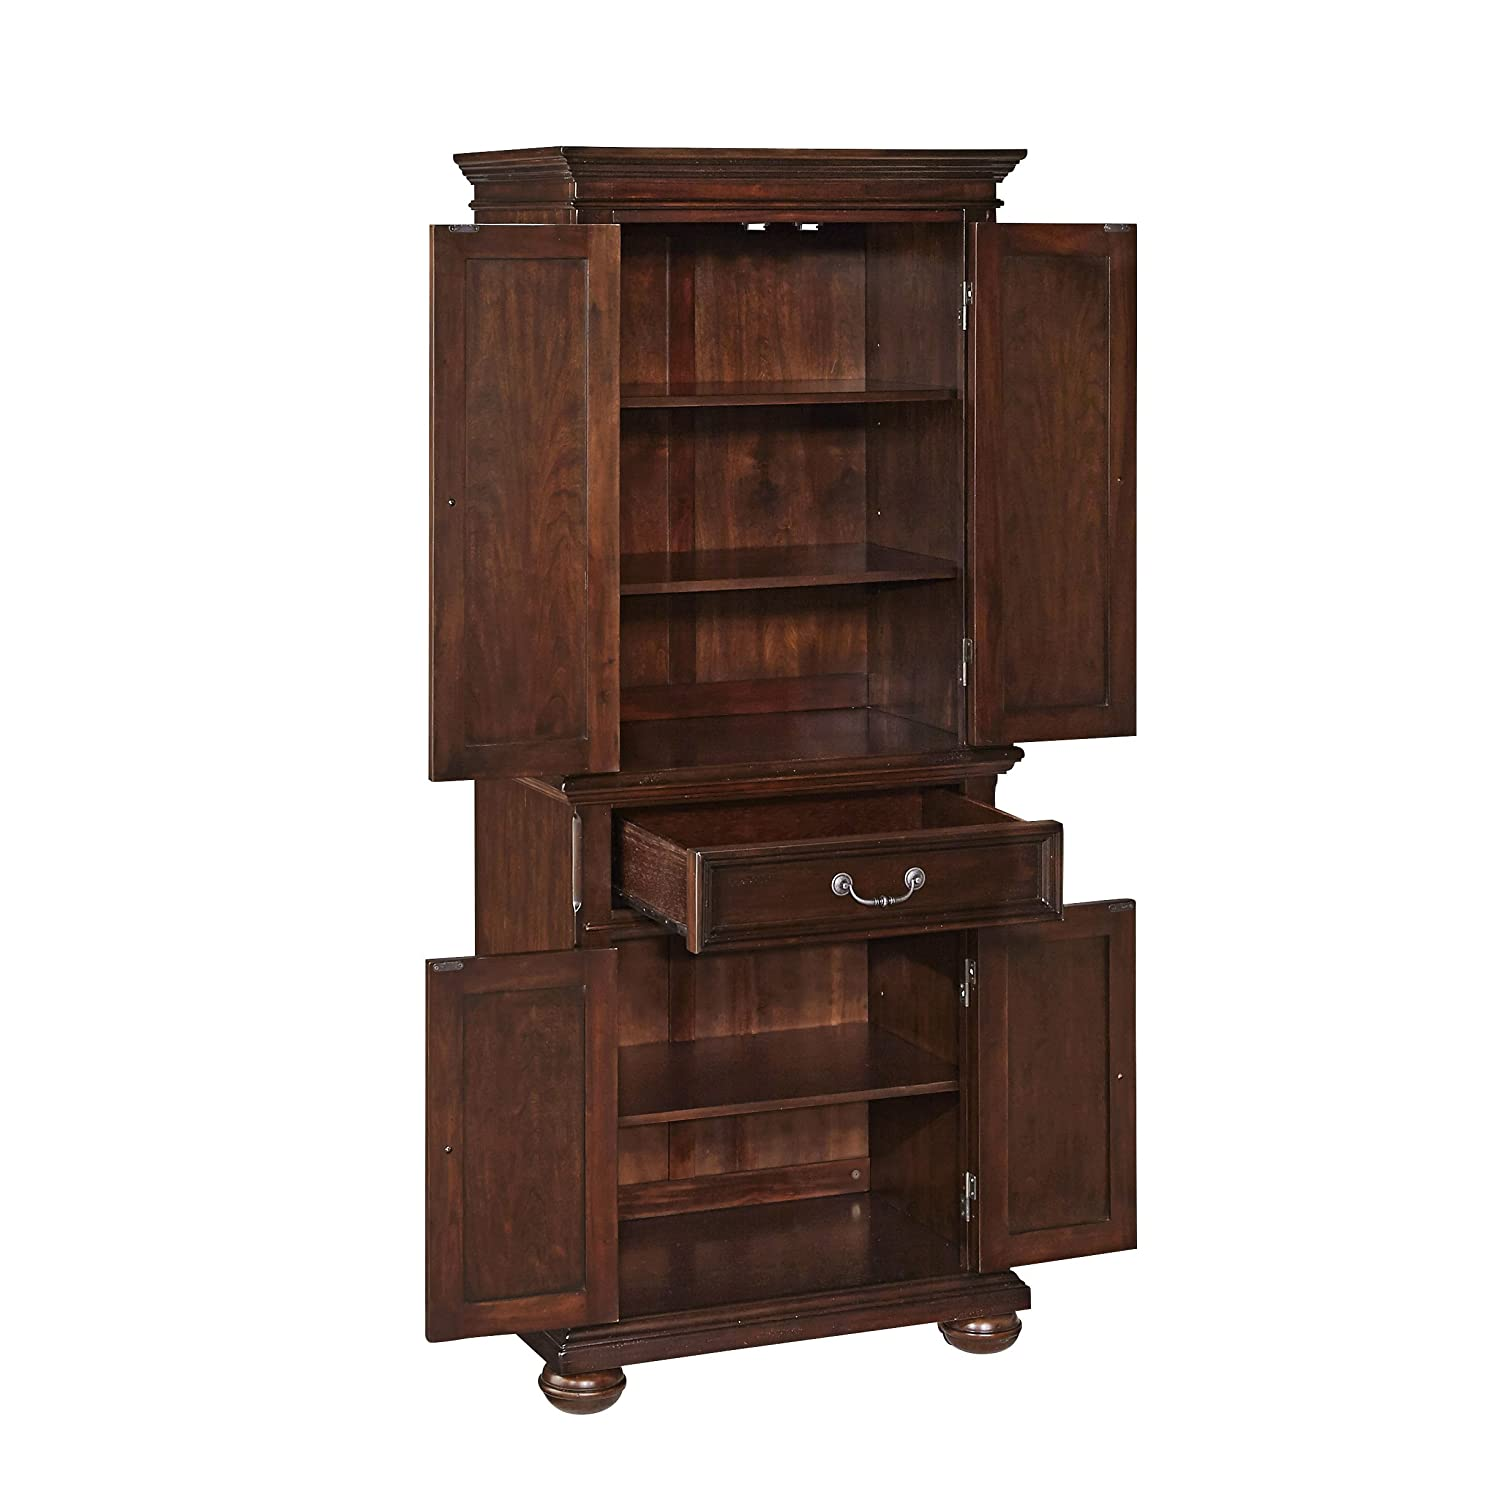 Amazon.com: Home Styles Colonial Classic Pantry Cabinet: Kitchen U0026 Dining